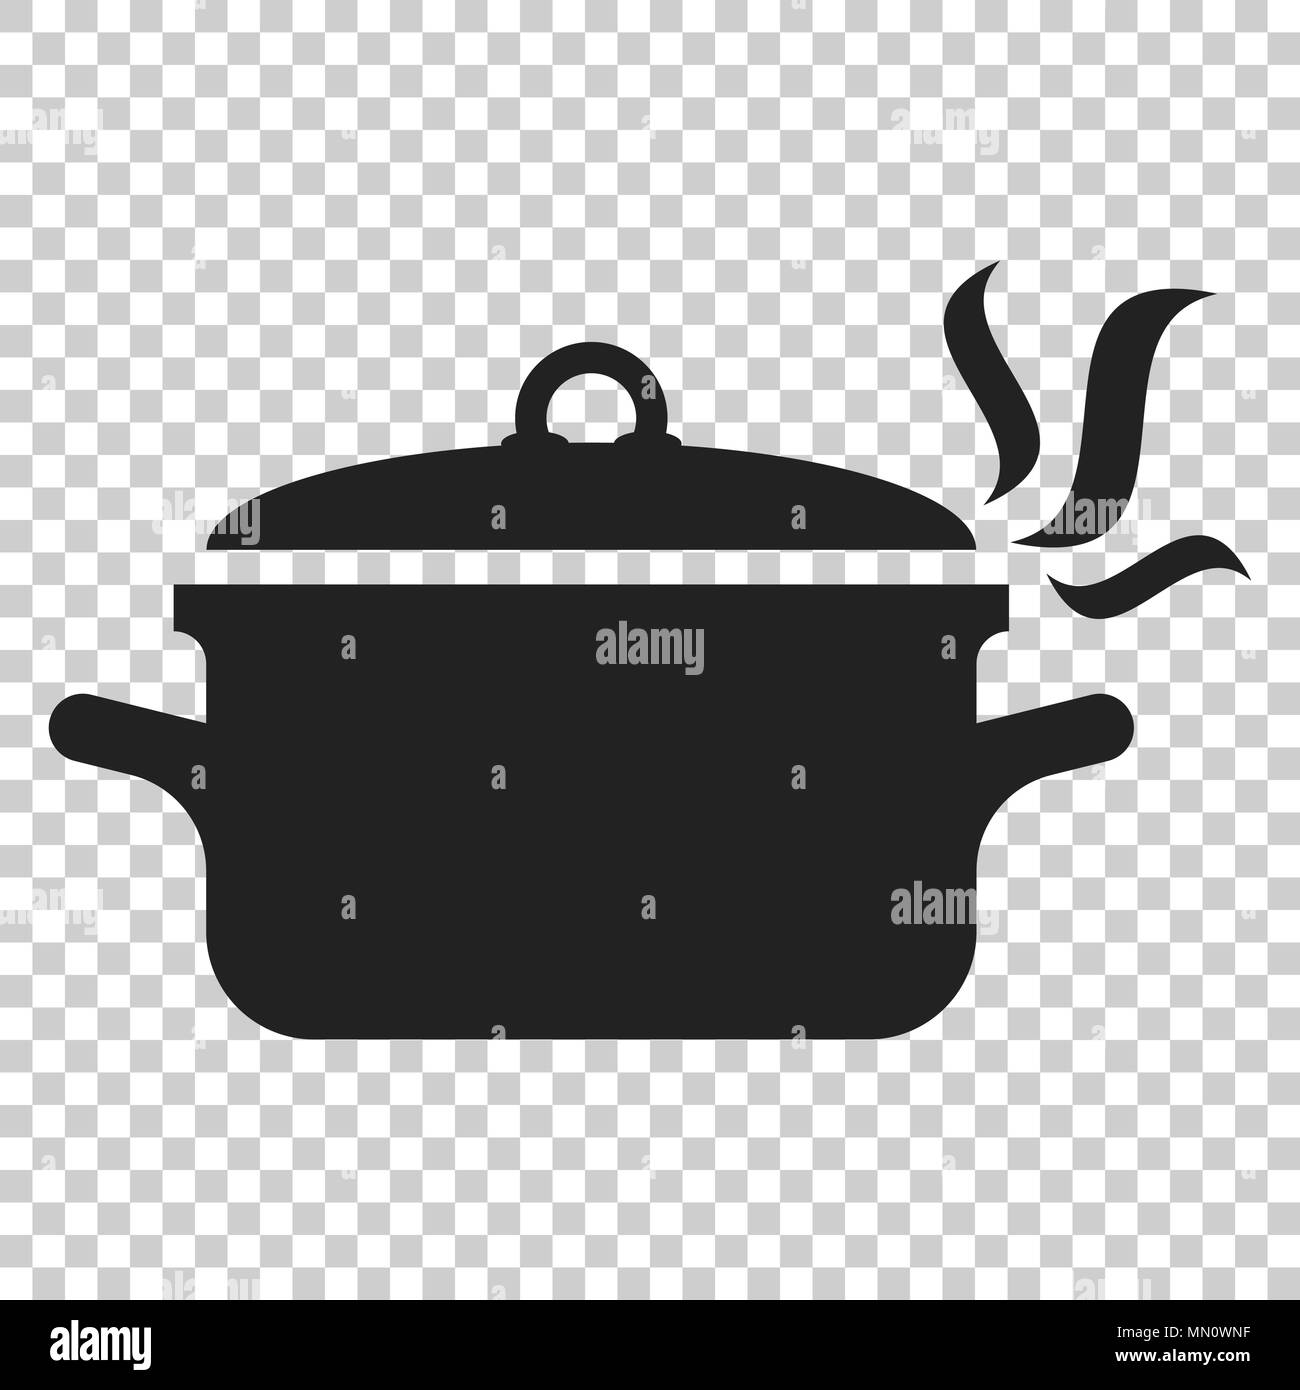 8794cfc2c5 Cooking pan icon in flat style. Kitchen pot illustration on isolated  transparent background. Saucepan equipment business concept.